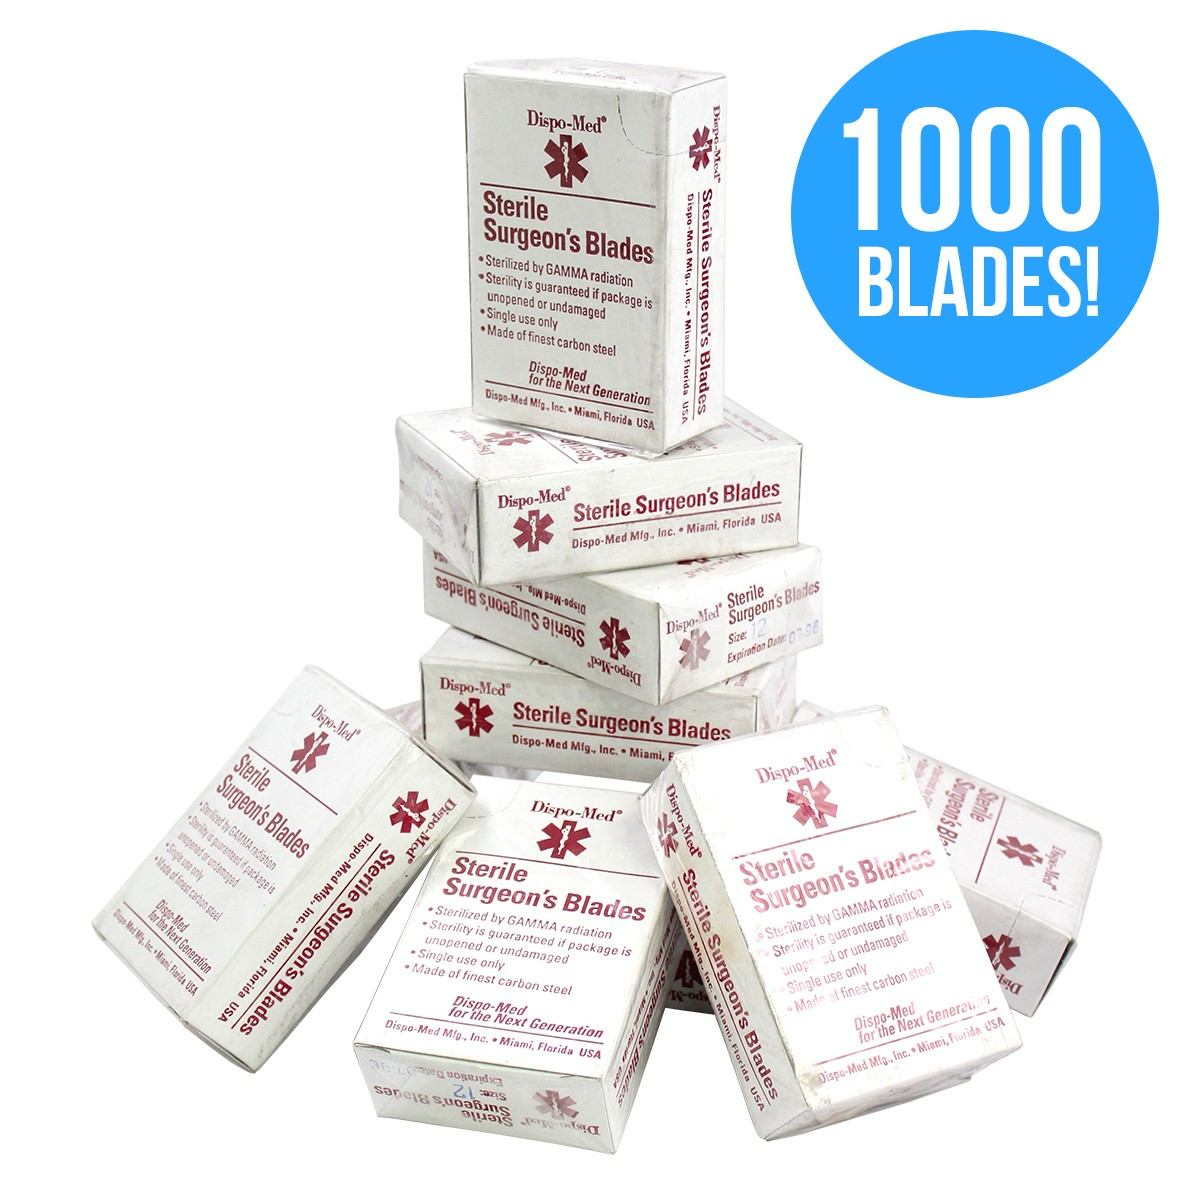 Dispo-Med #12 Sterile Surgeon's Blades - 10 Boxes Of 100